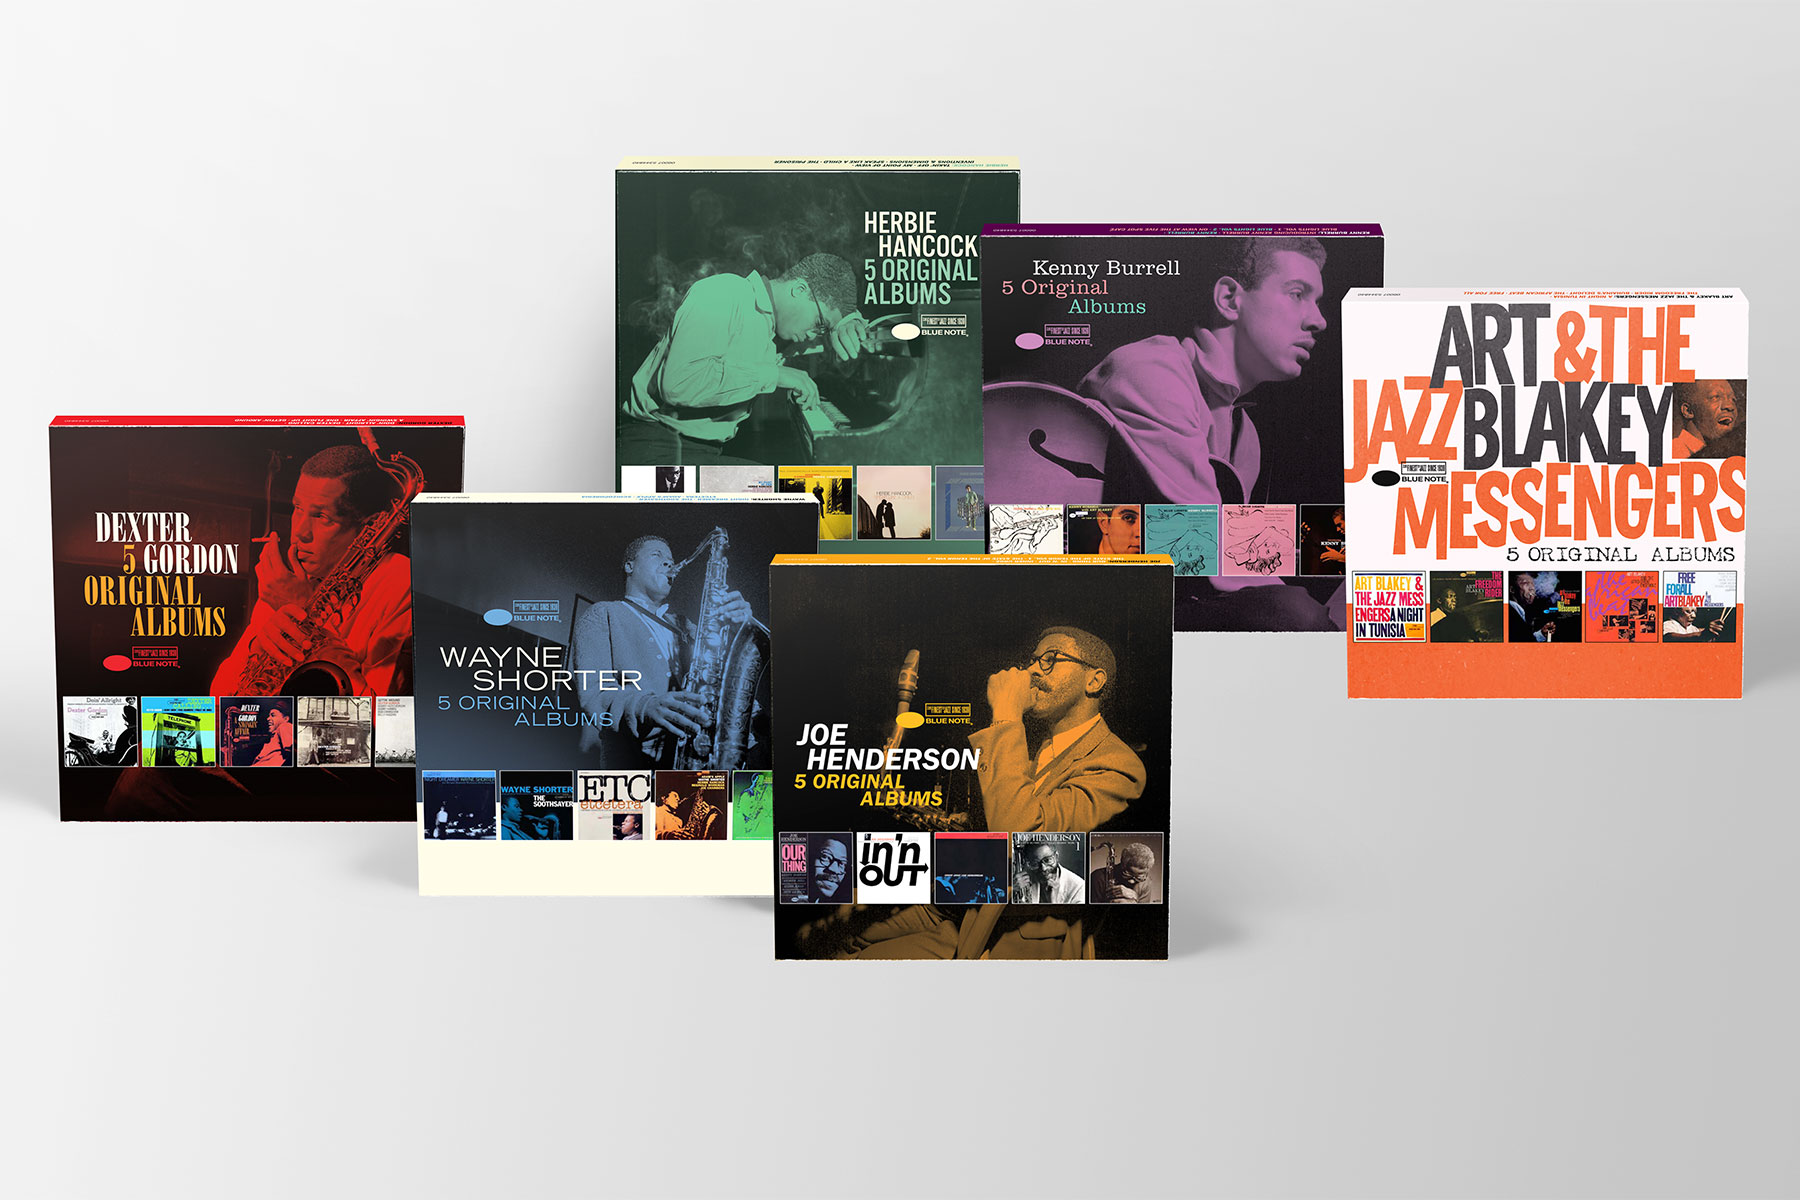 Art Direktion Artwork Cover Design Blue Note 5 Original Albums Box Sets Fotos: Francis Wolff